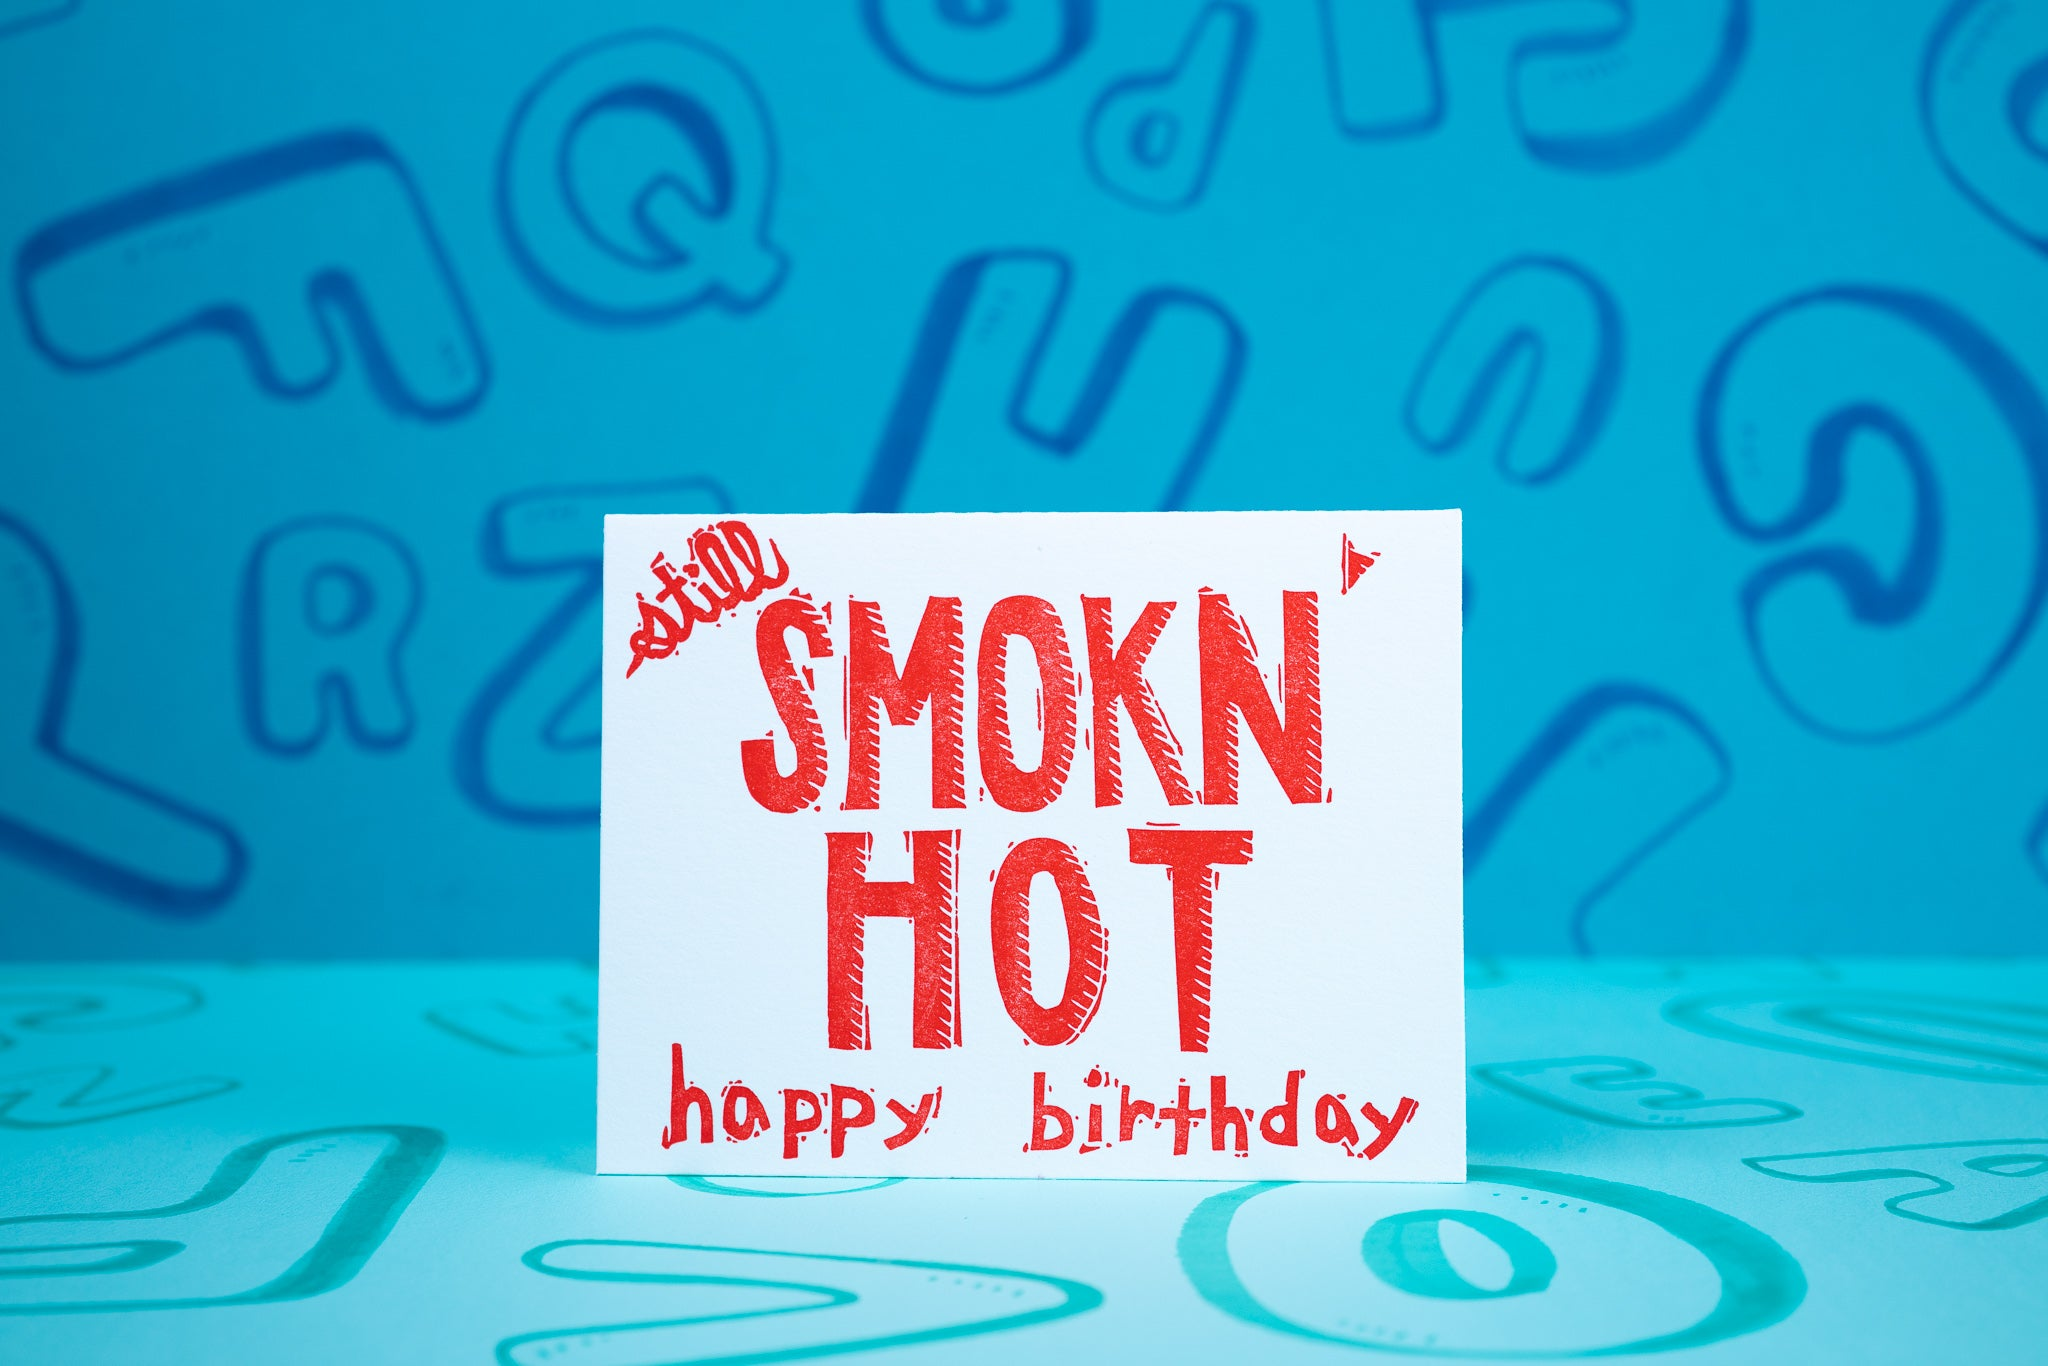 Smok'n Hot Birthday